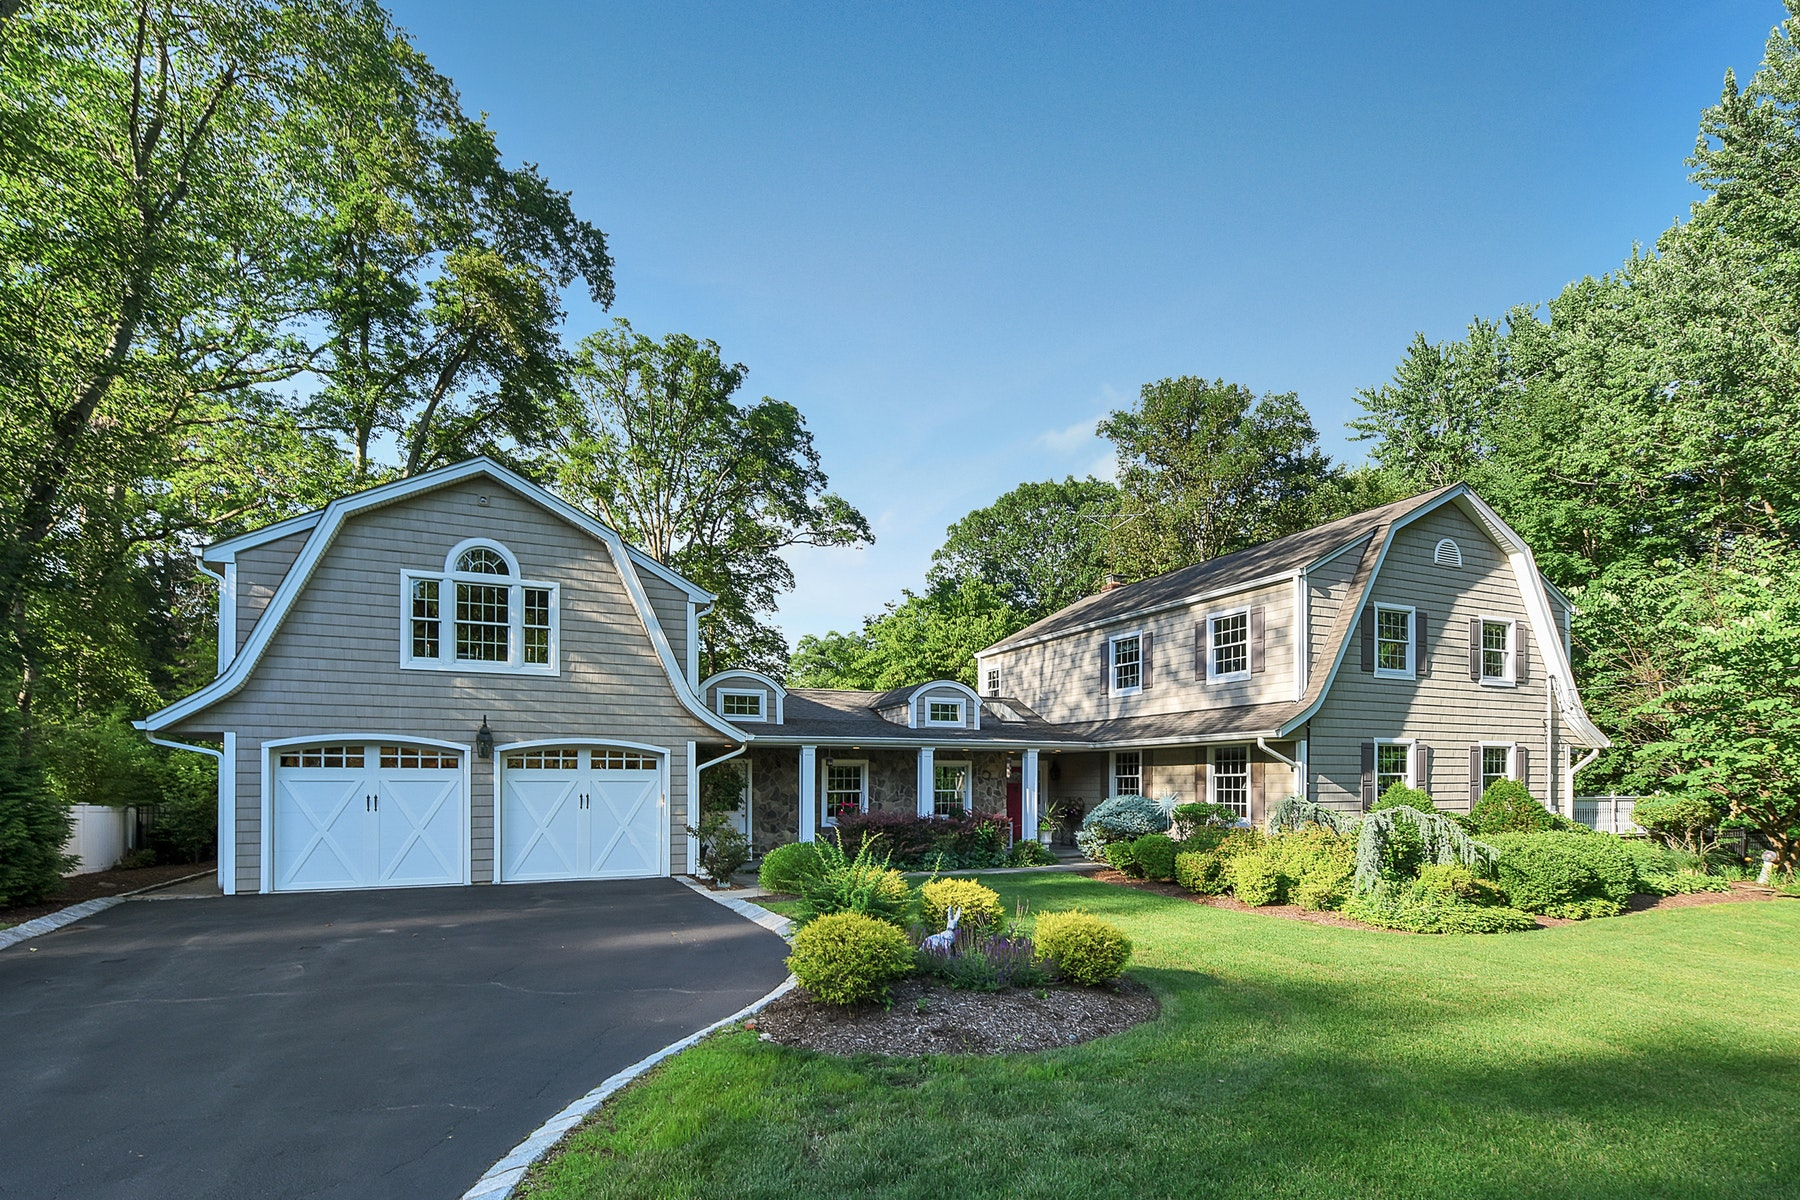 Single Family Homes for Sale at Charming Cul De Sac Colonial 428 Kelly Court Wyckoff, New Jersey 07481 United States